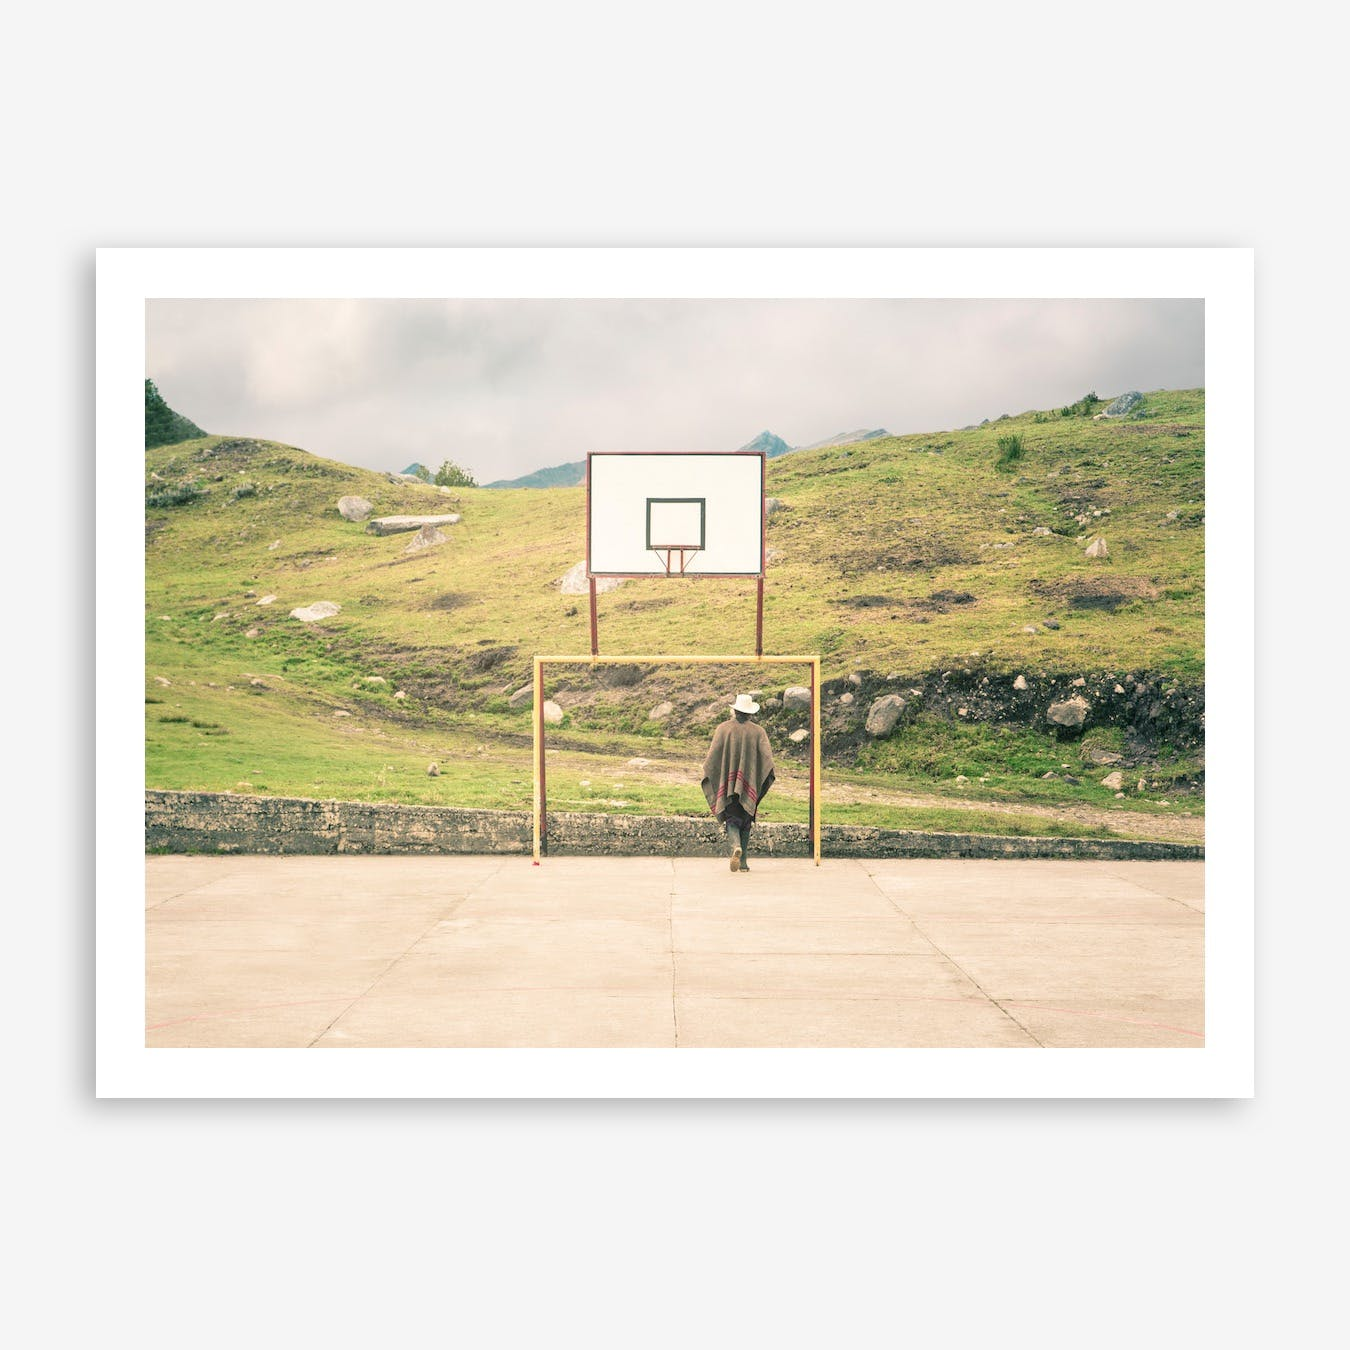 Streetball Courts 2 El Cocuy